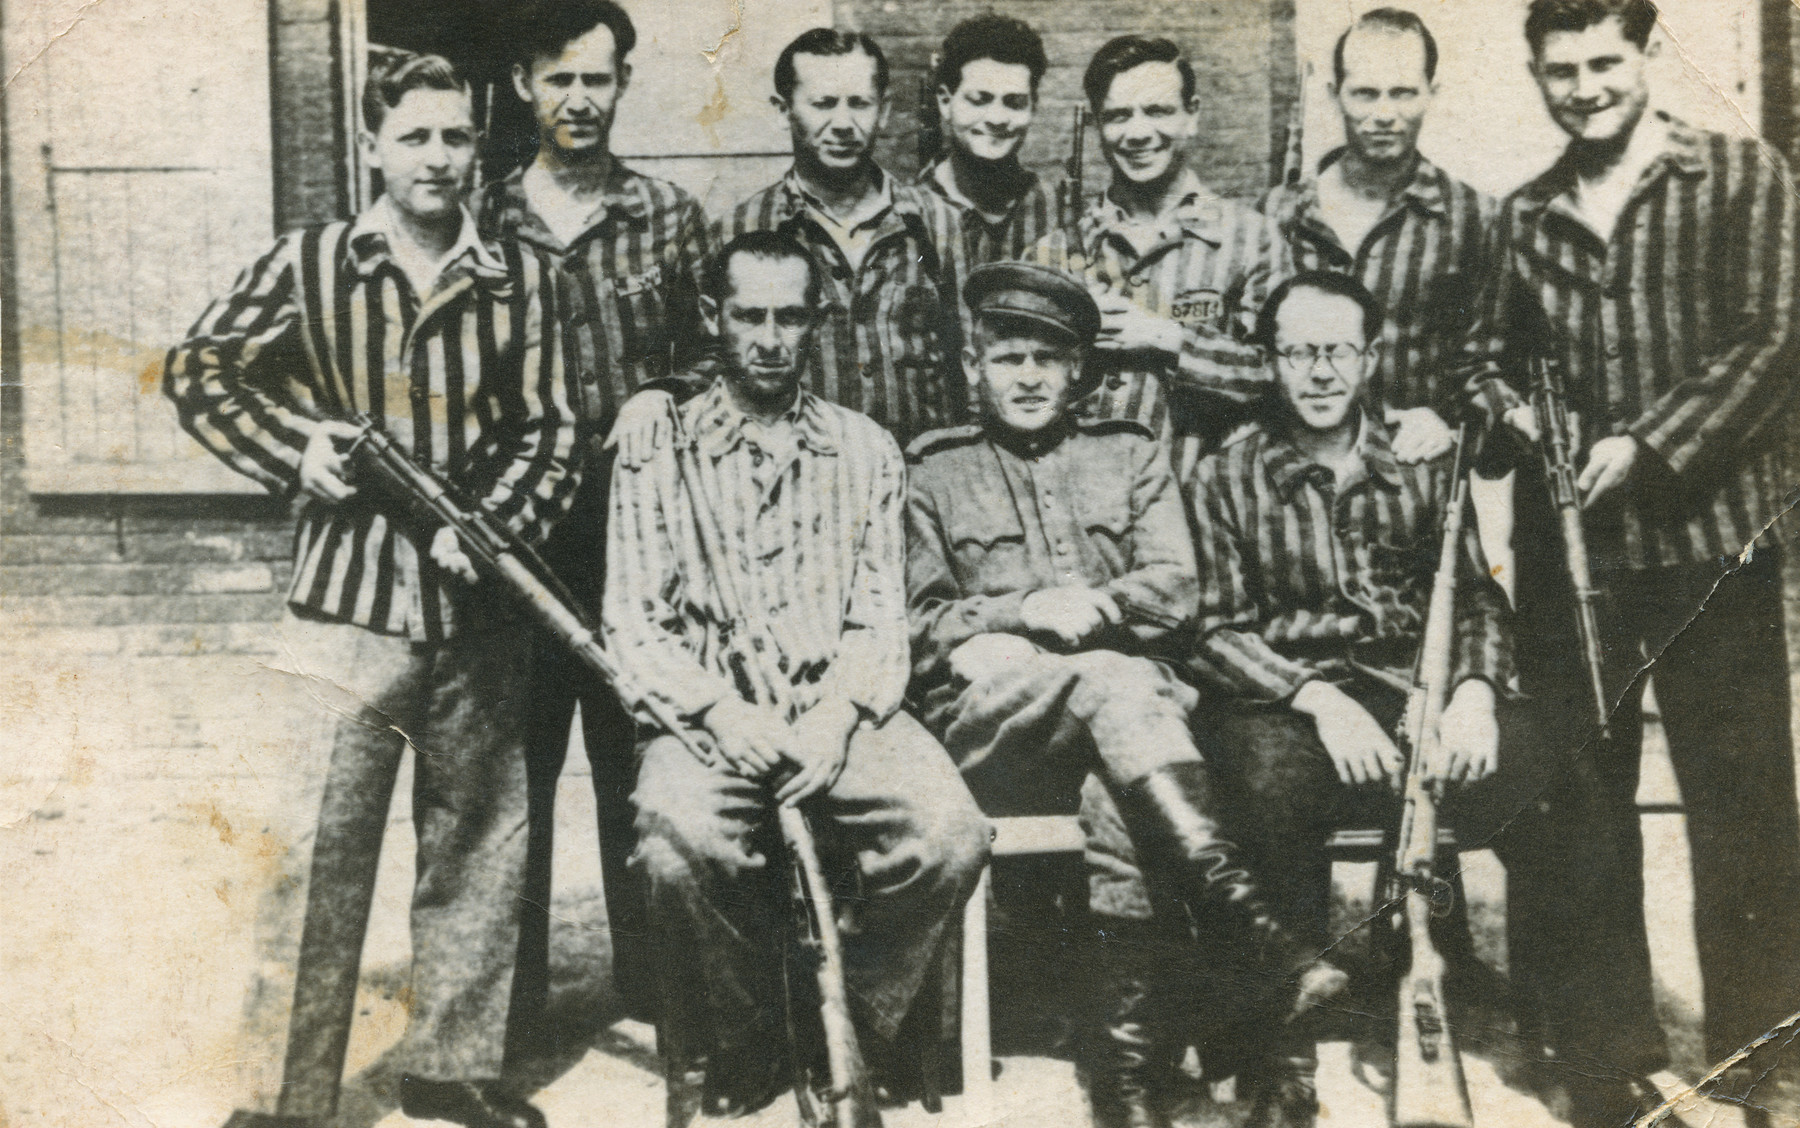 Group portrait of a Soviet soldier and liberated prisoners, some holding weapons, in the Buchenwald concentration camp.  Henrich Drabinowski on the left holding a rifle.